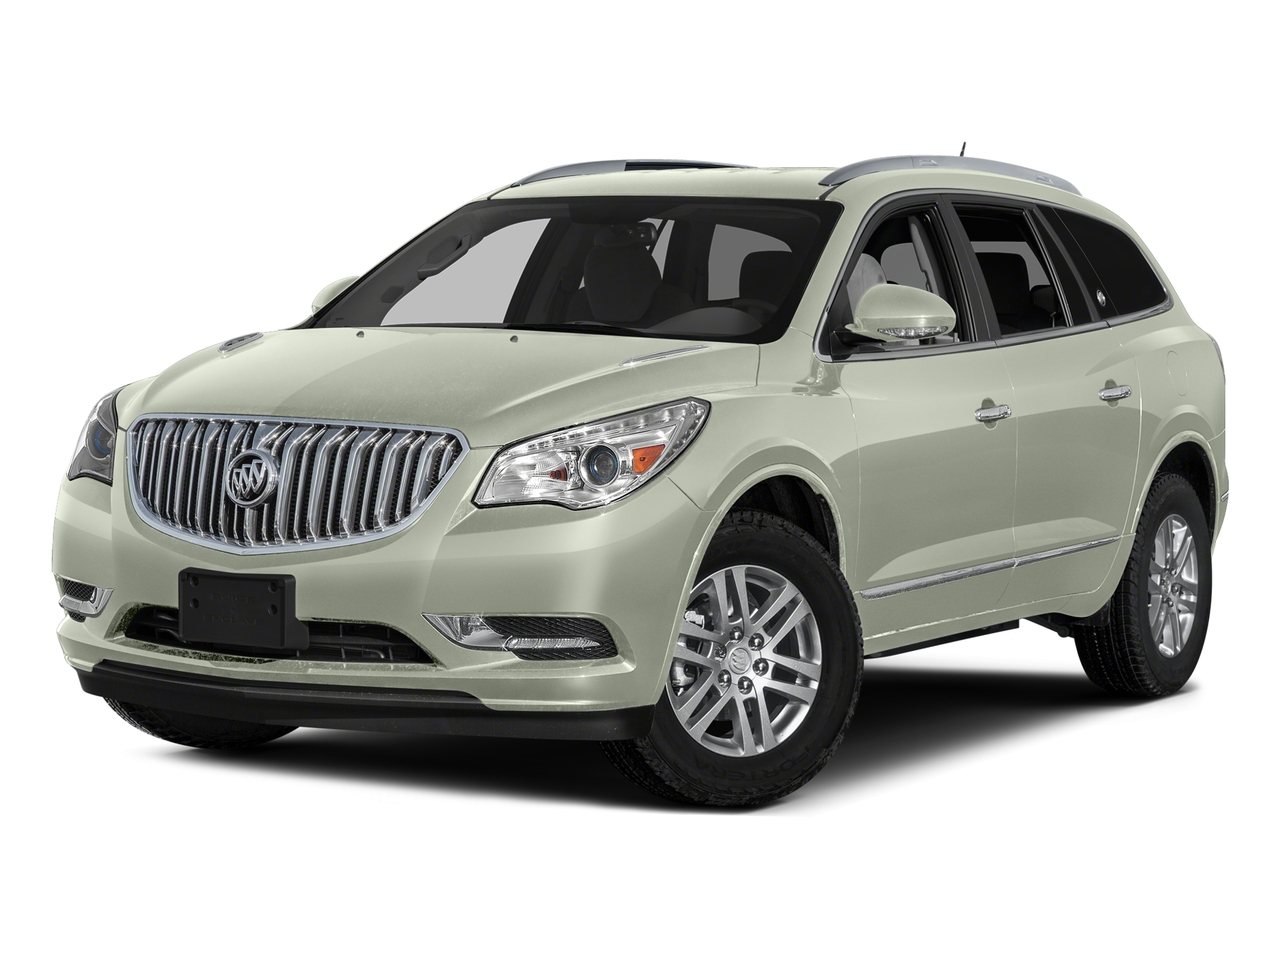 2017 Buick Enclave PREMIUM GROUP SUV Slide